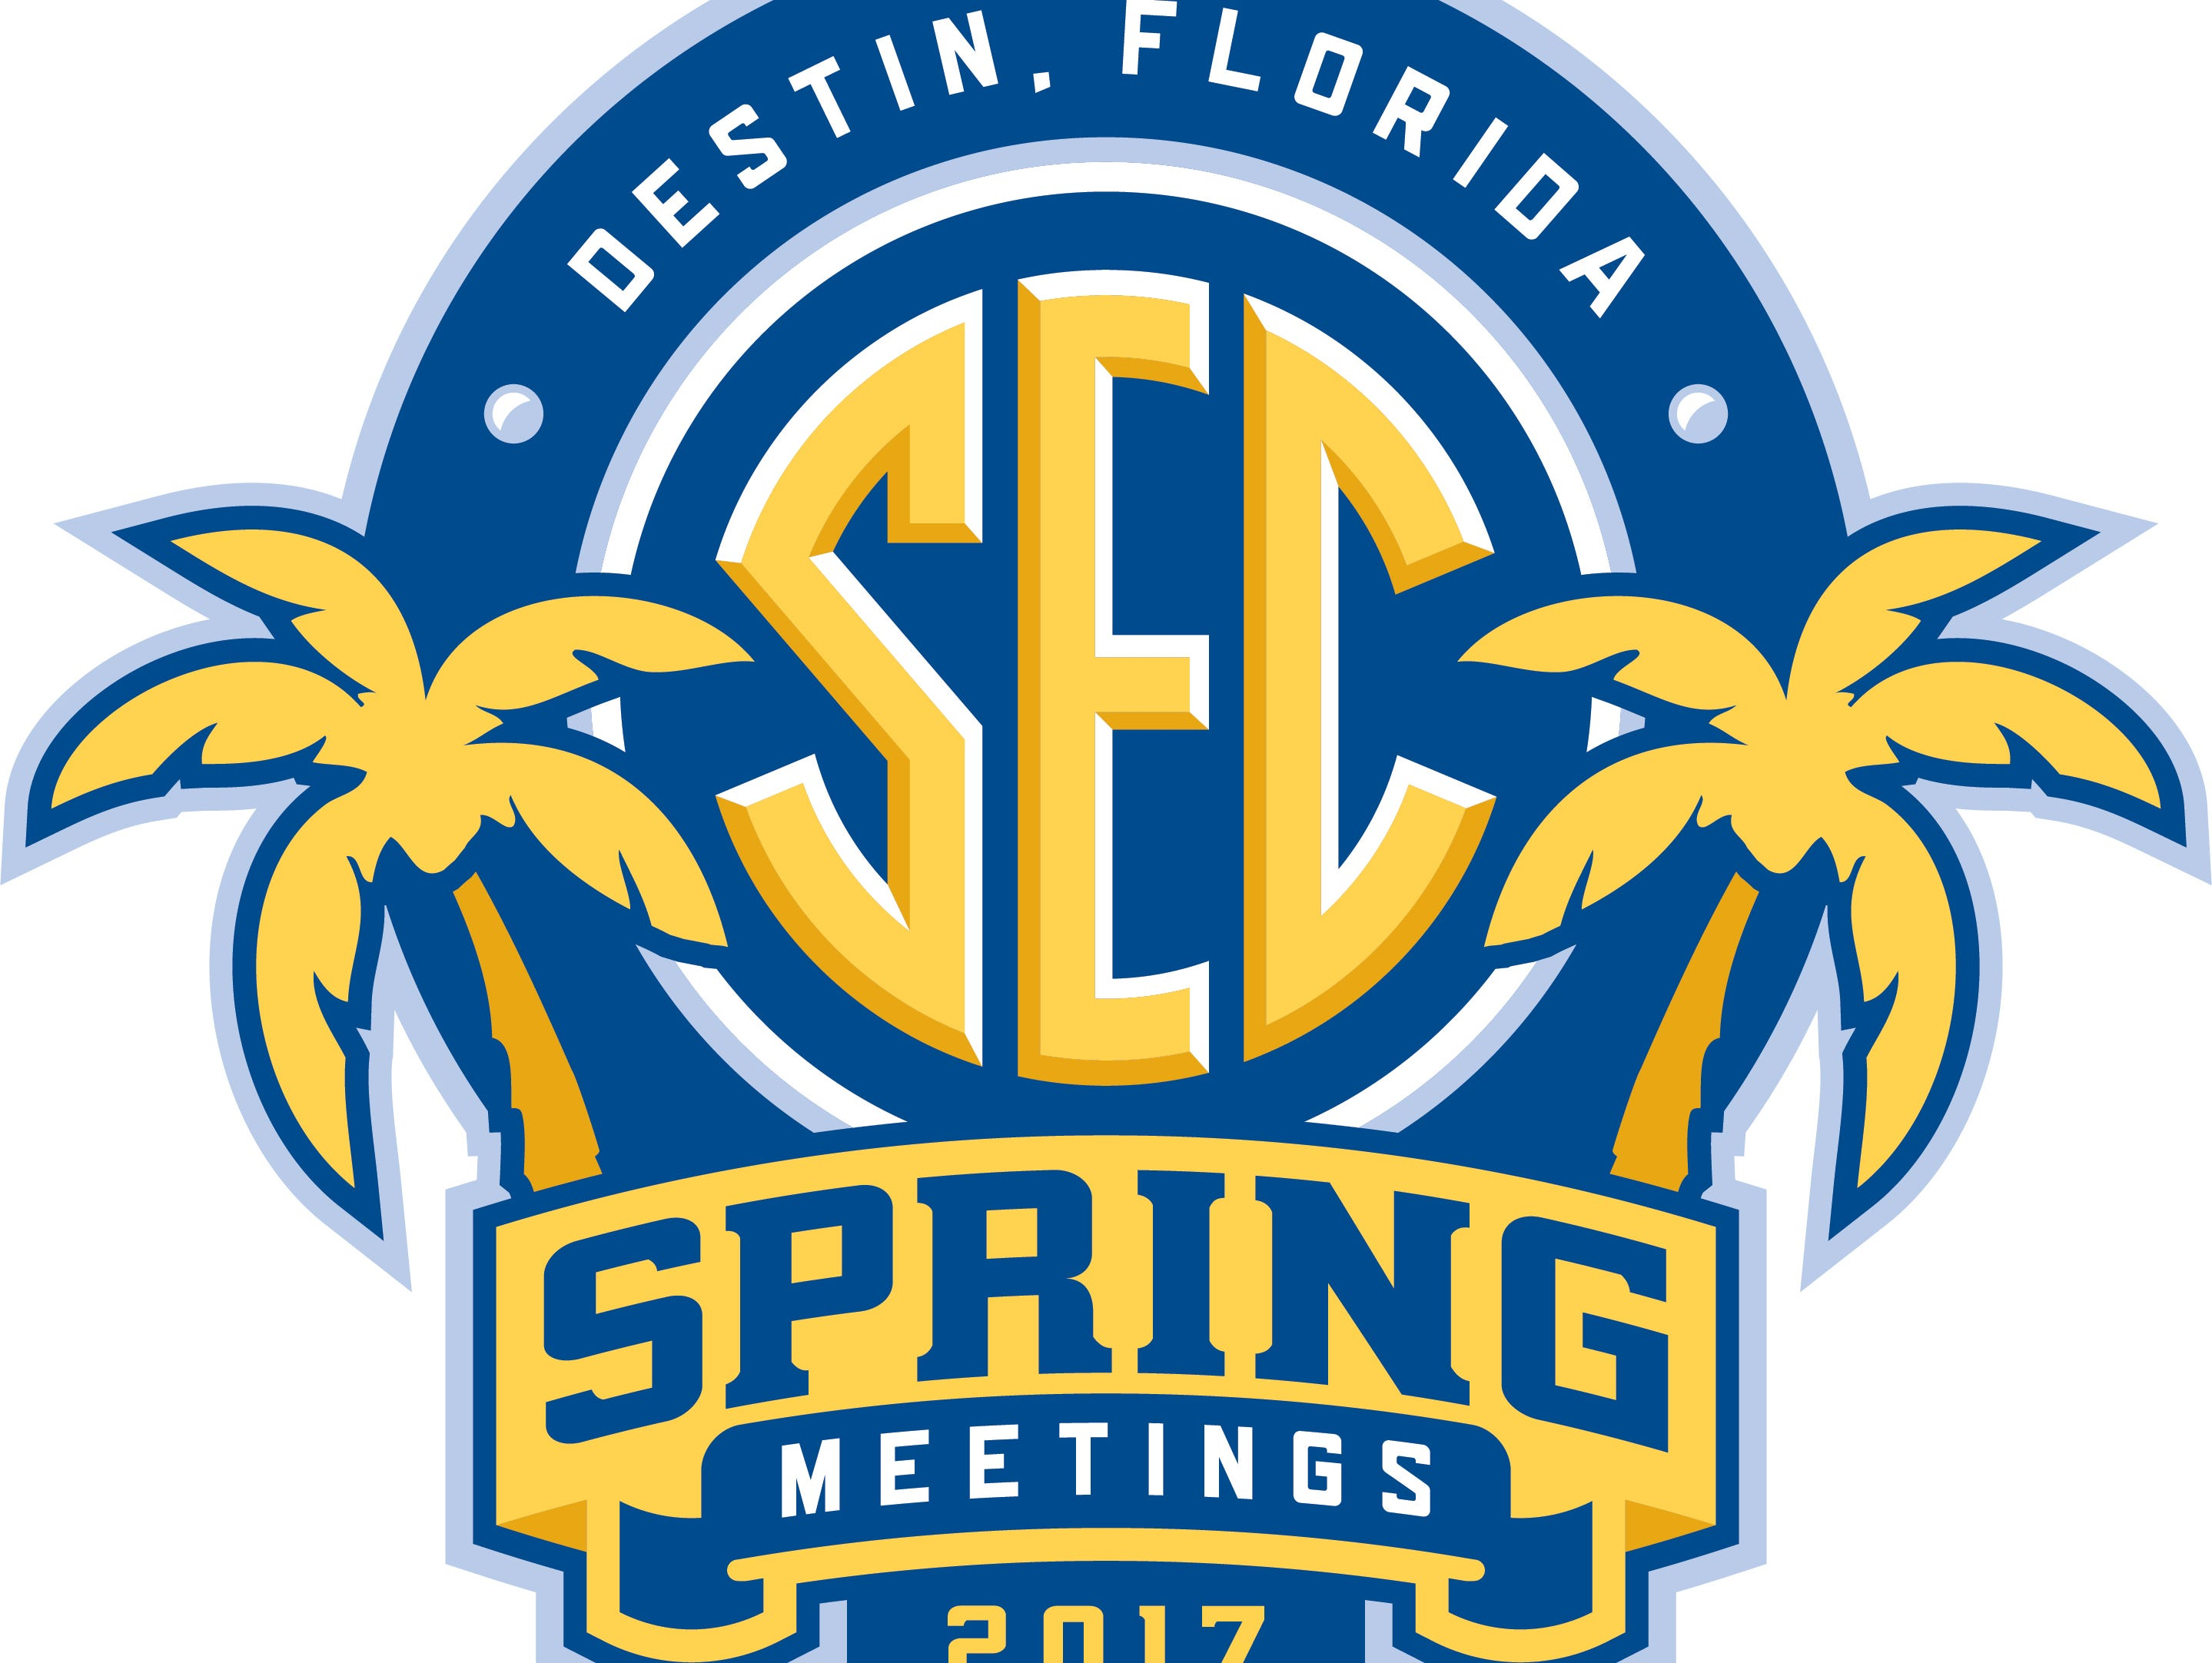 The Southeastern Conference spring meetings are taking place from May 30-June 2 in Destin, Florida.